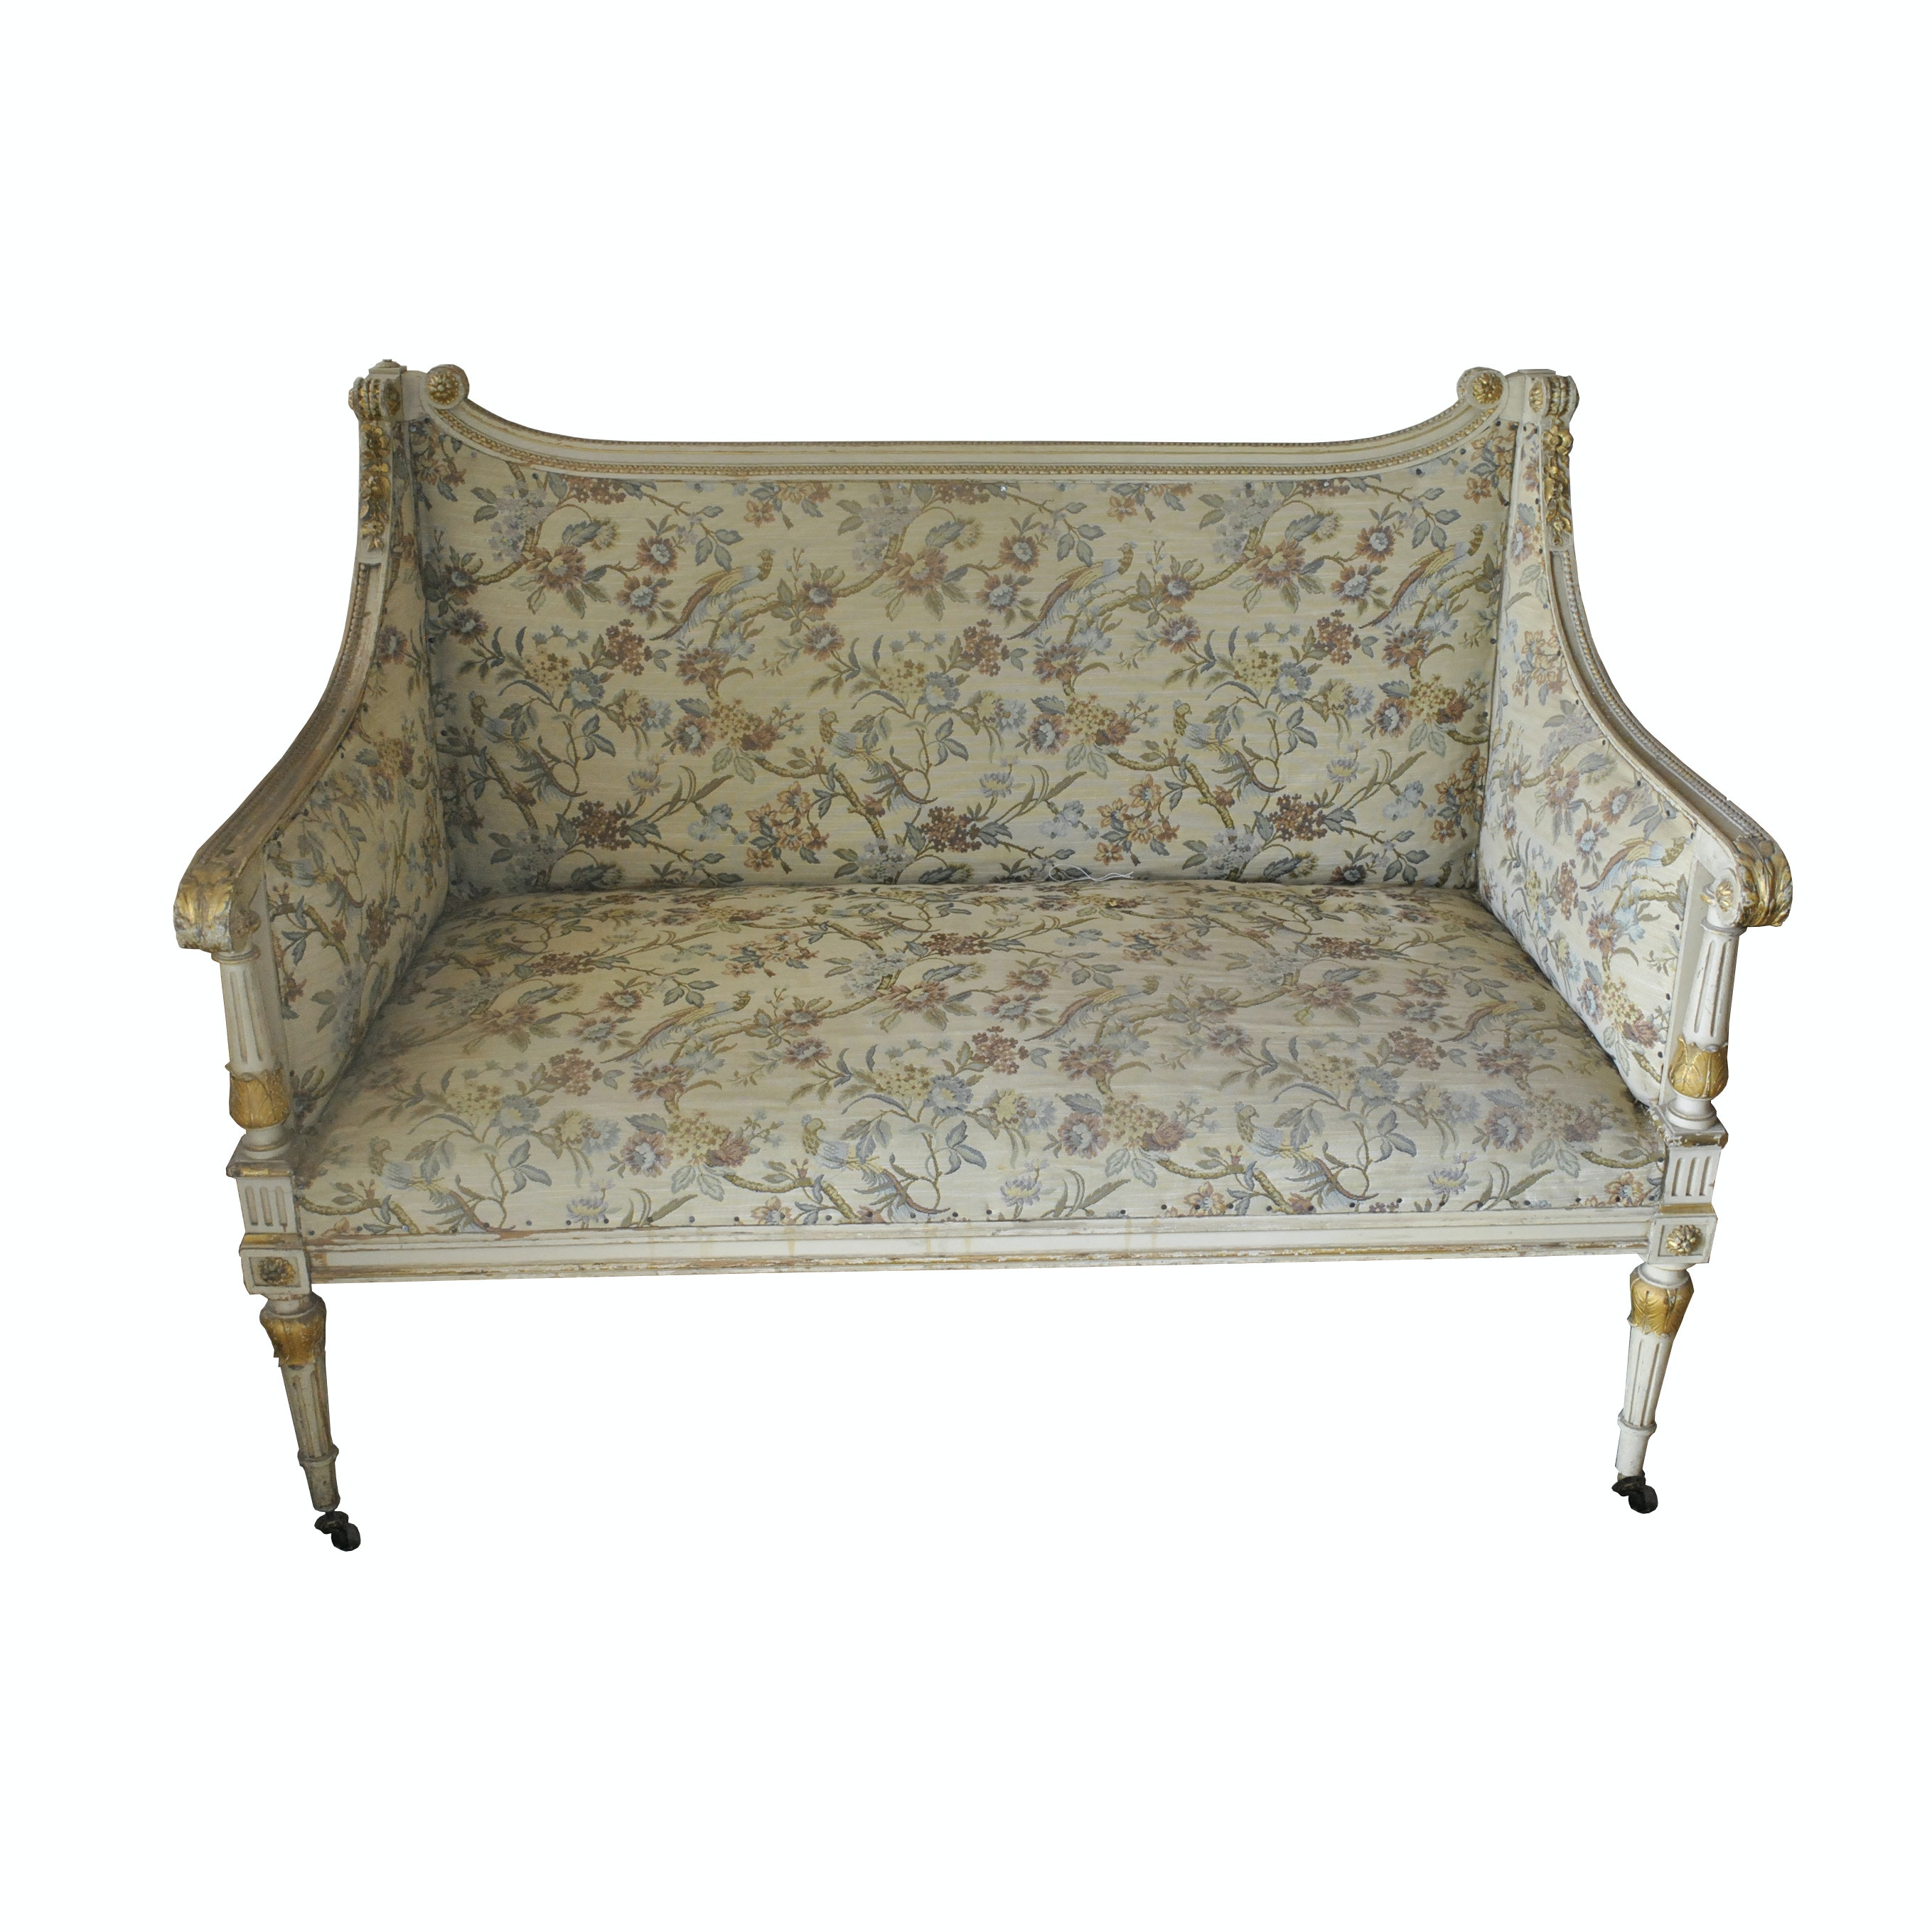 Bird and Flower Upholstered Louis XVI Style Settee